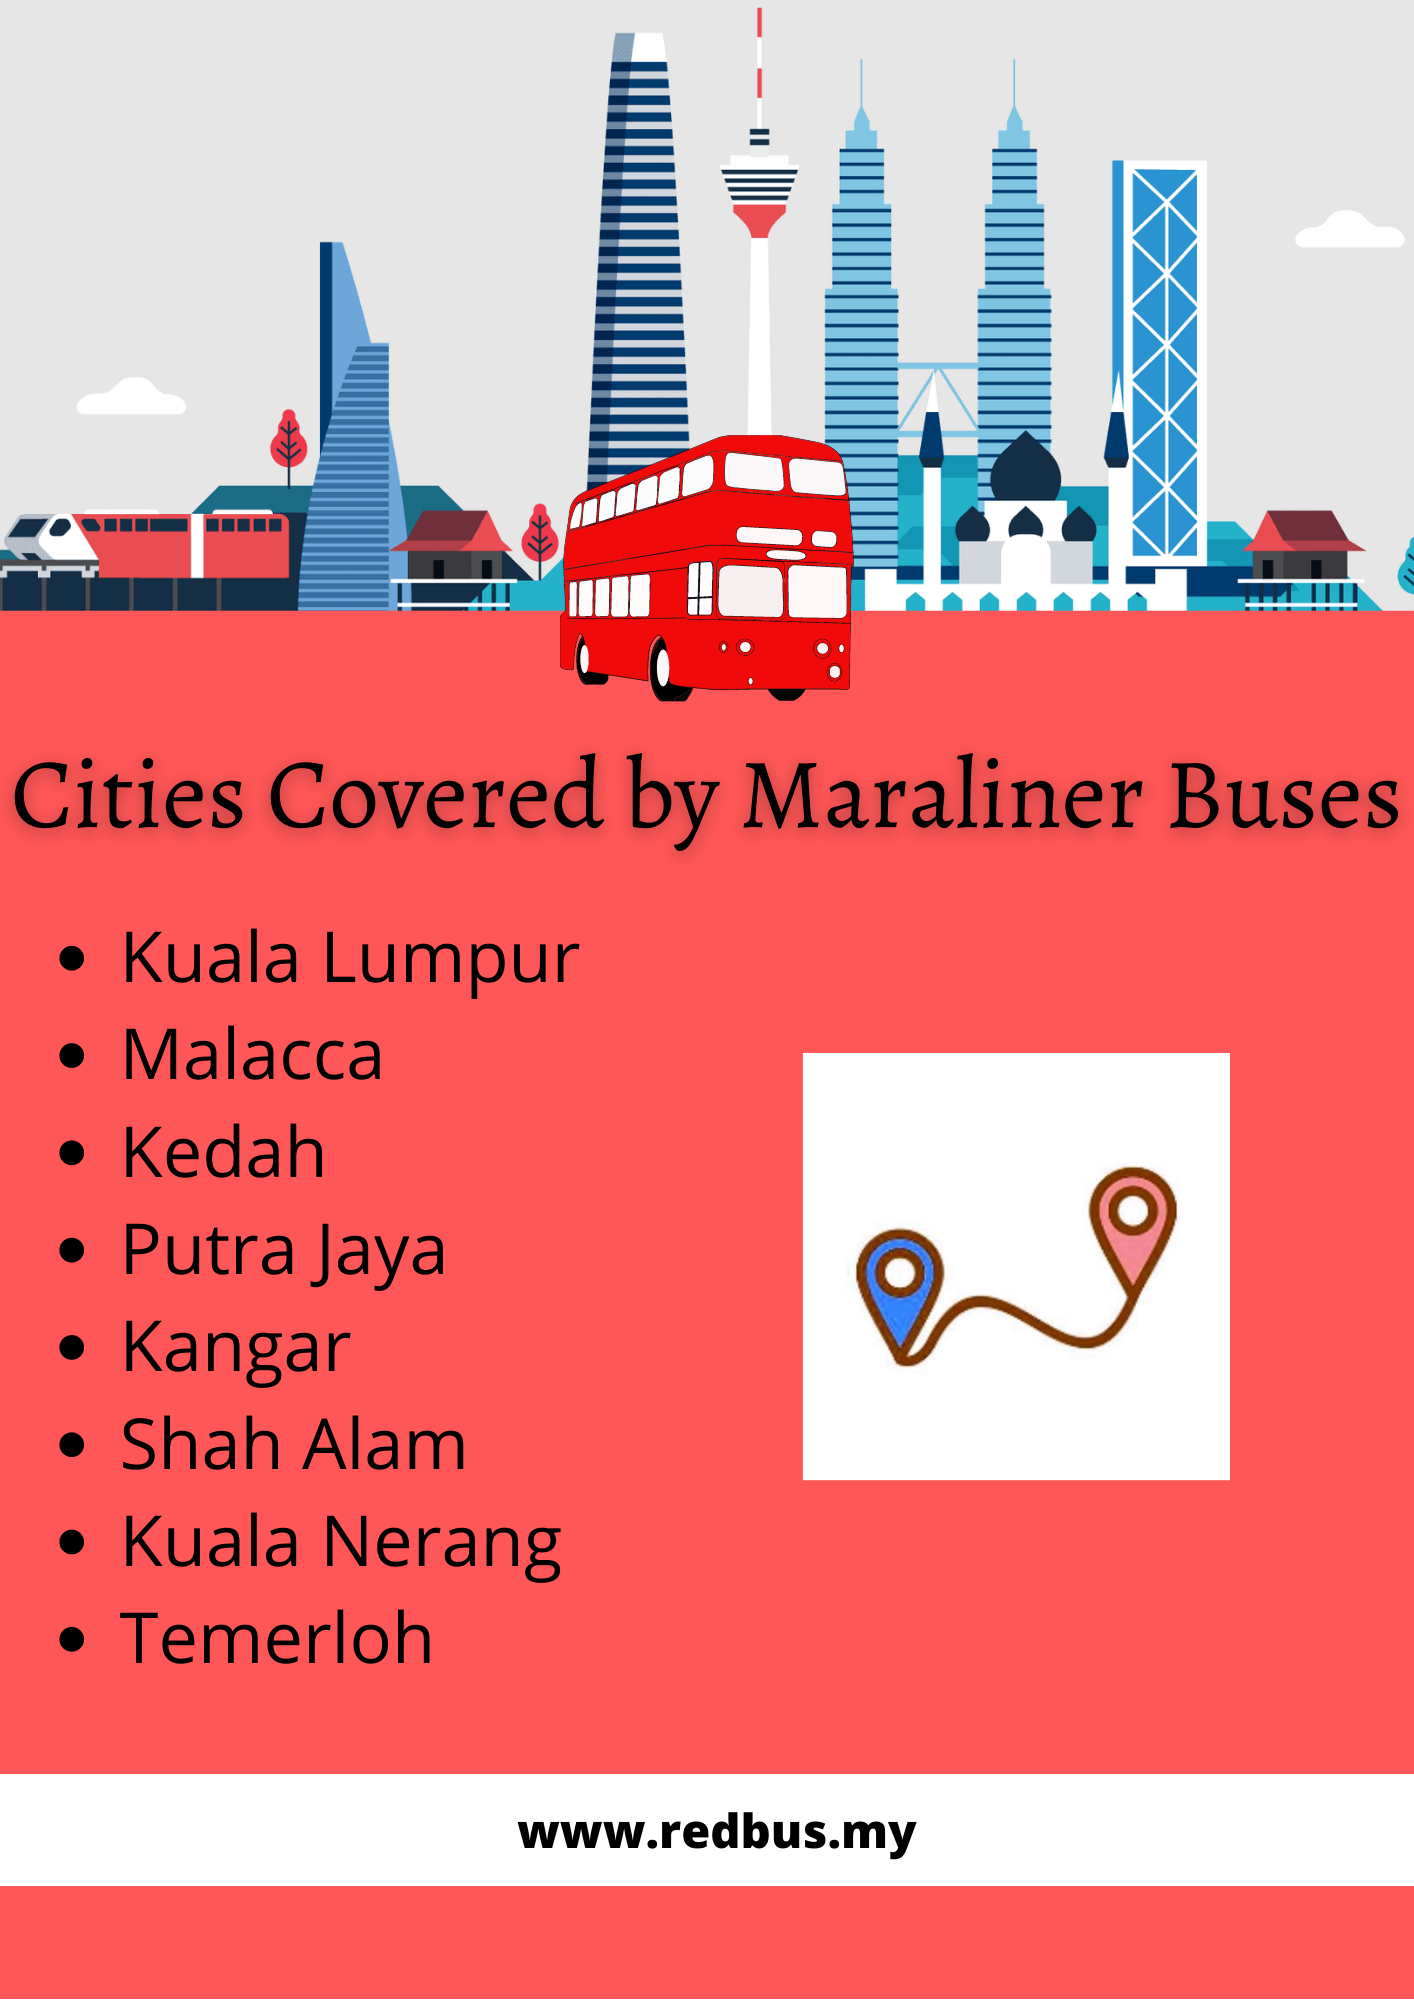 Cities Served By Maraliner Buses